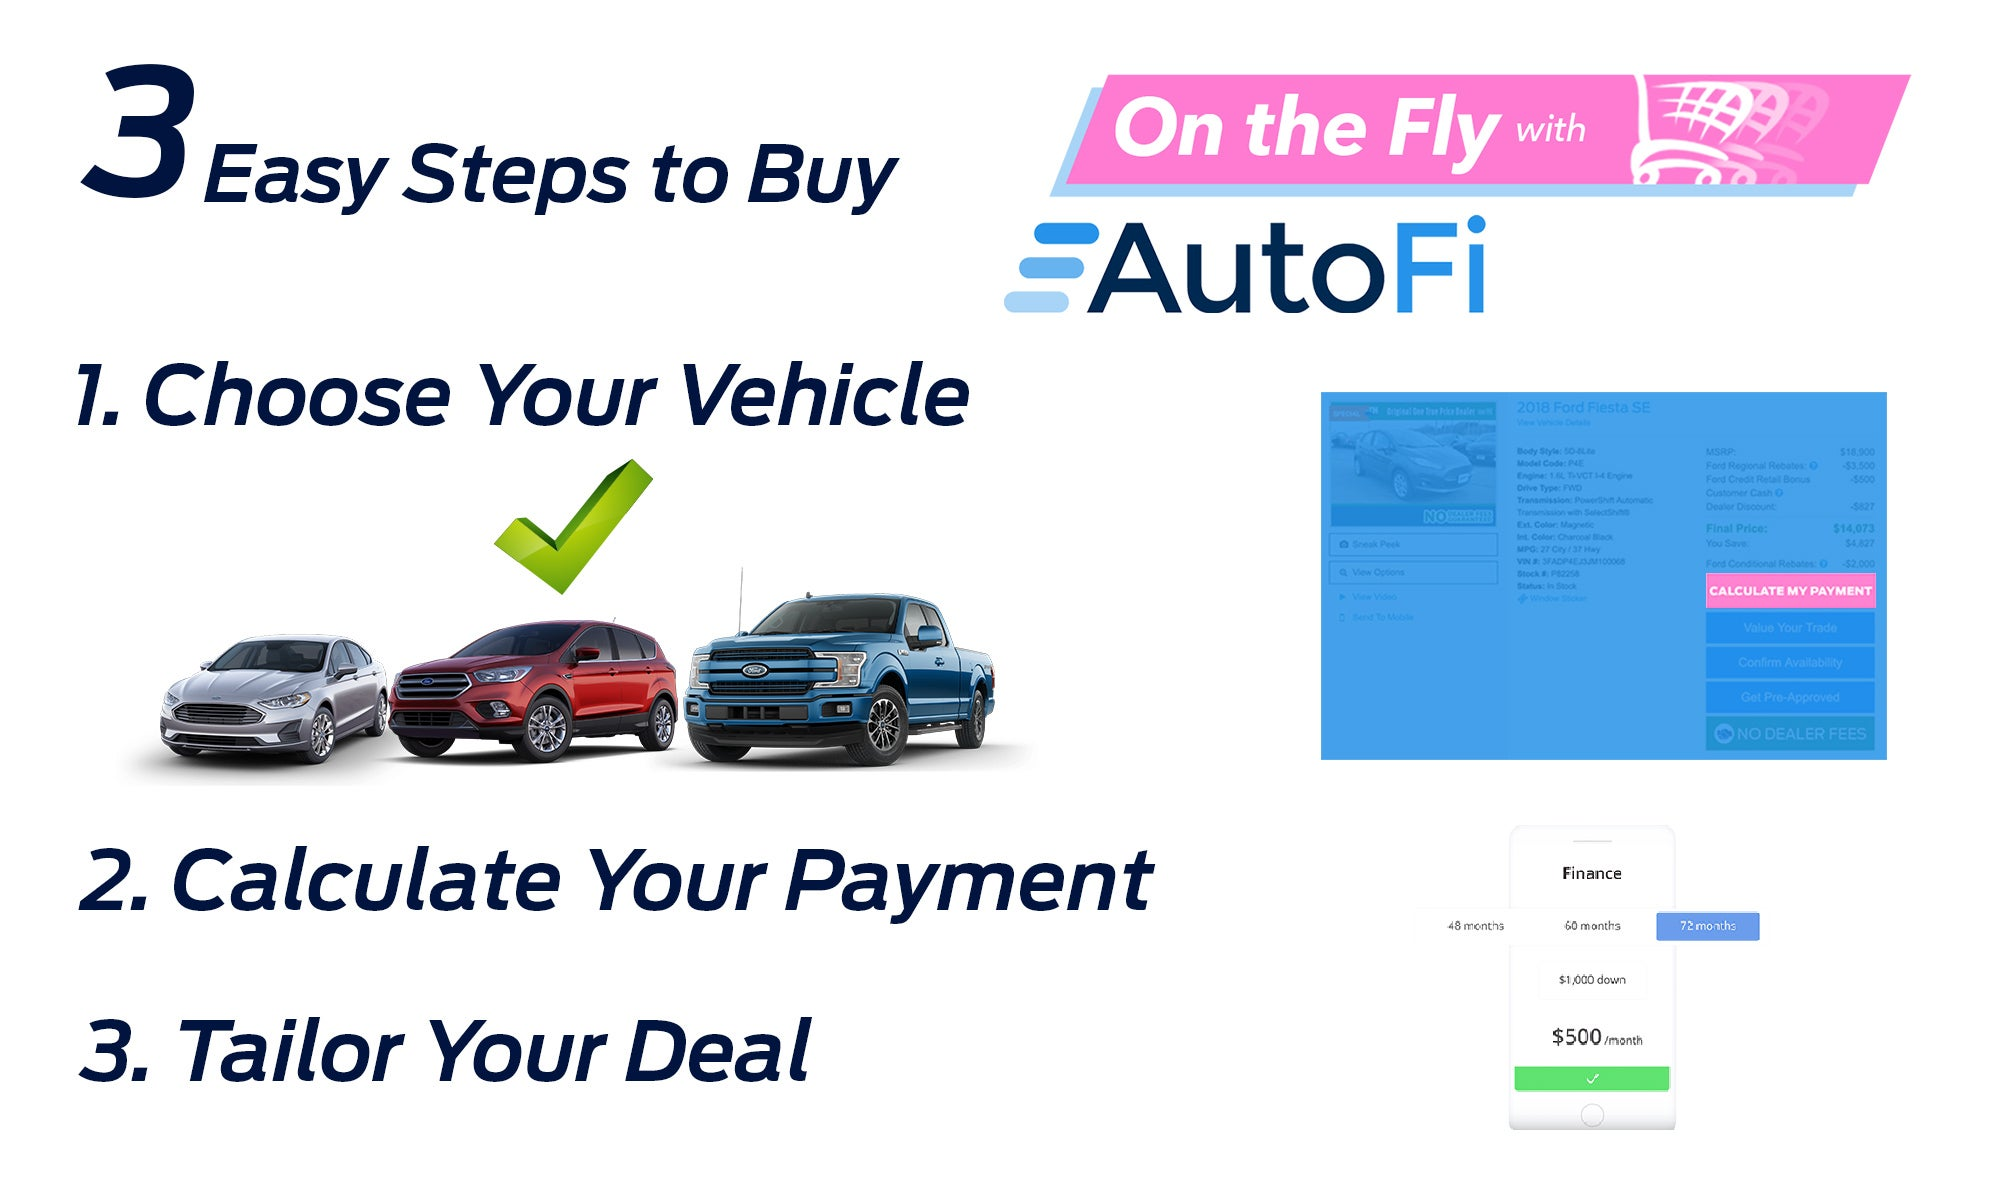 Used Car Down Payment Calculator >> On The Fly With Autofi Portsmouth Used Car Center My Used